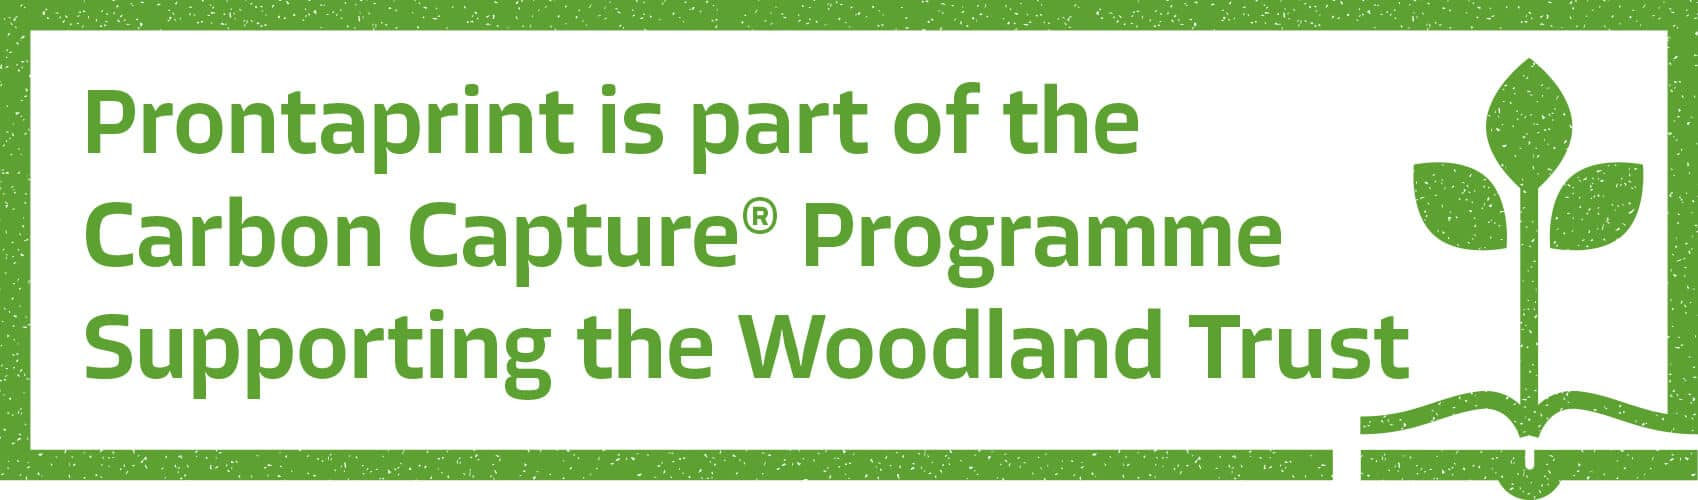 Prontaprint-Green-Sustainability-logo-stamp-supporting-woodland-trust